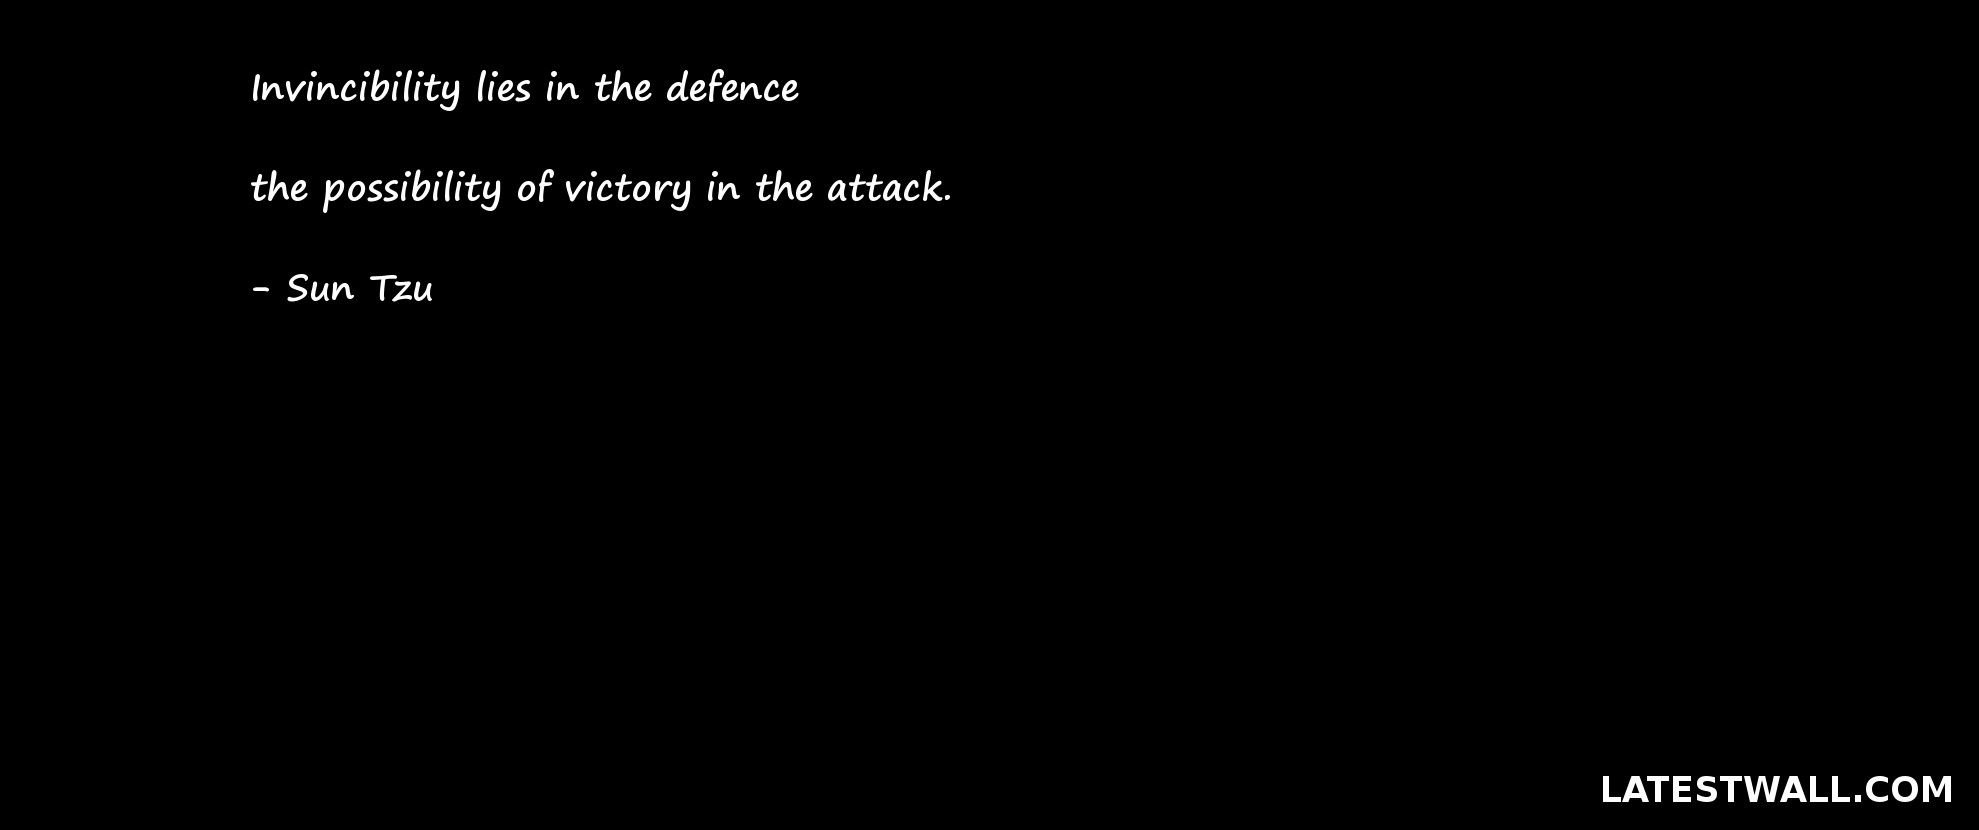 Invincibility lies in the defence